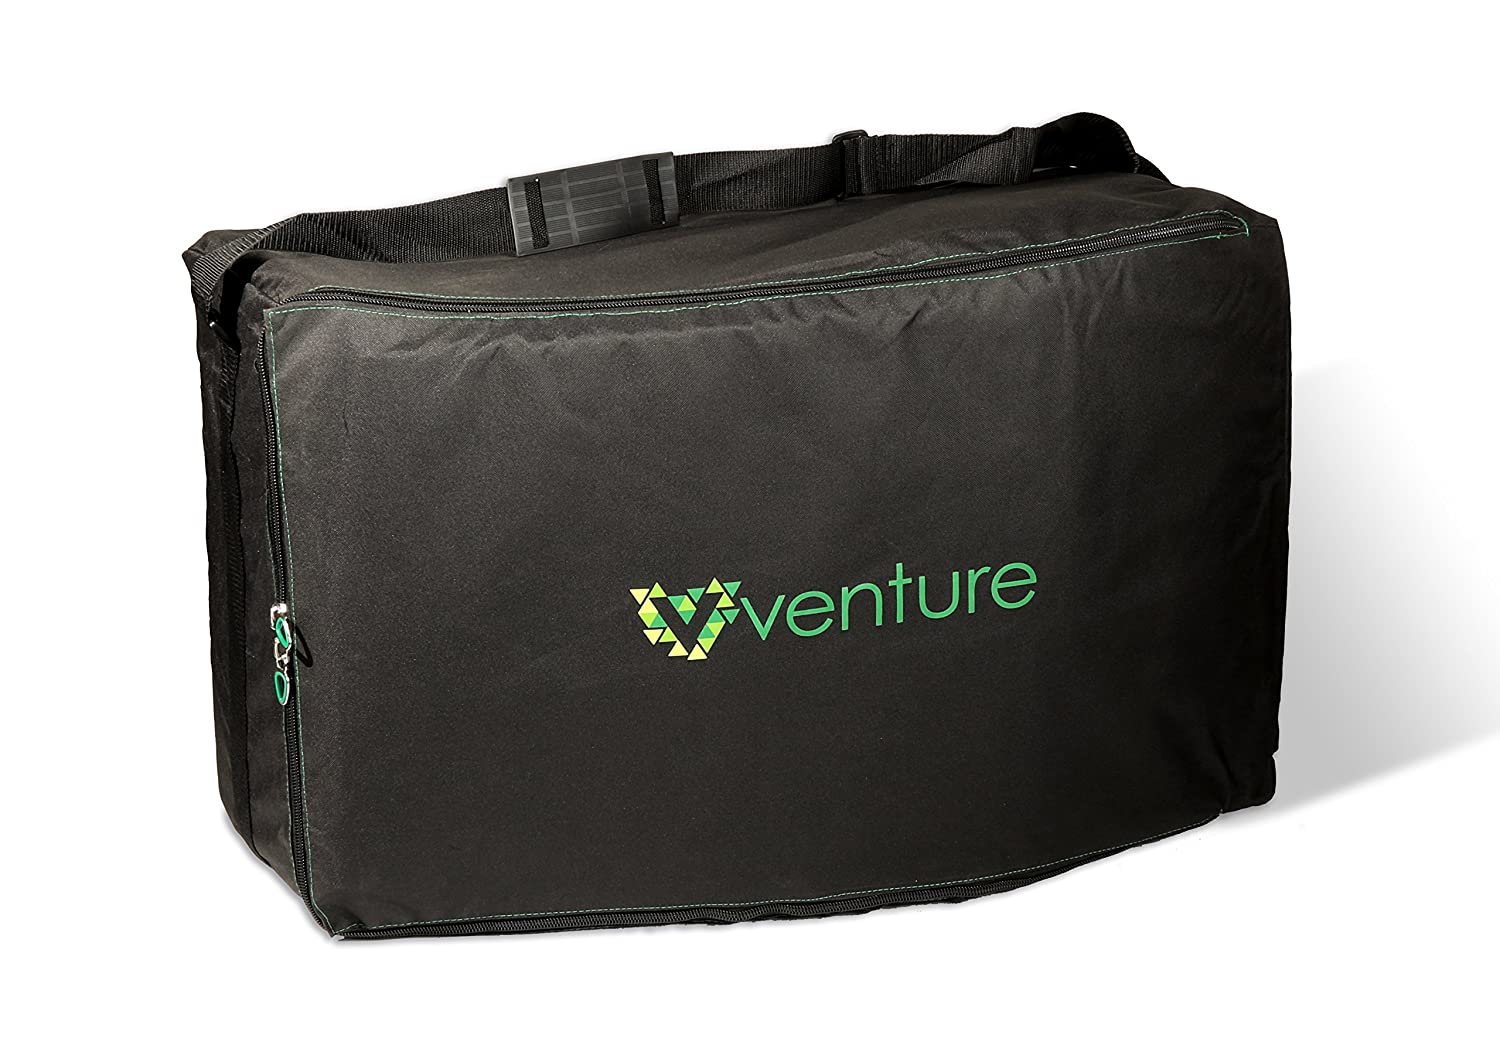 Venture Car Seat Travel Bag Protector v213